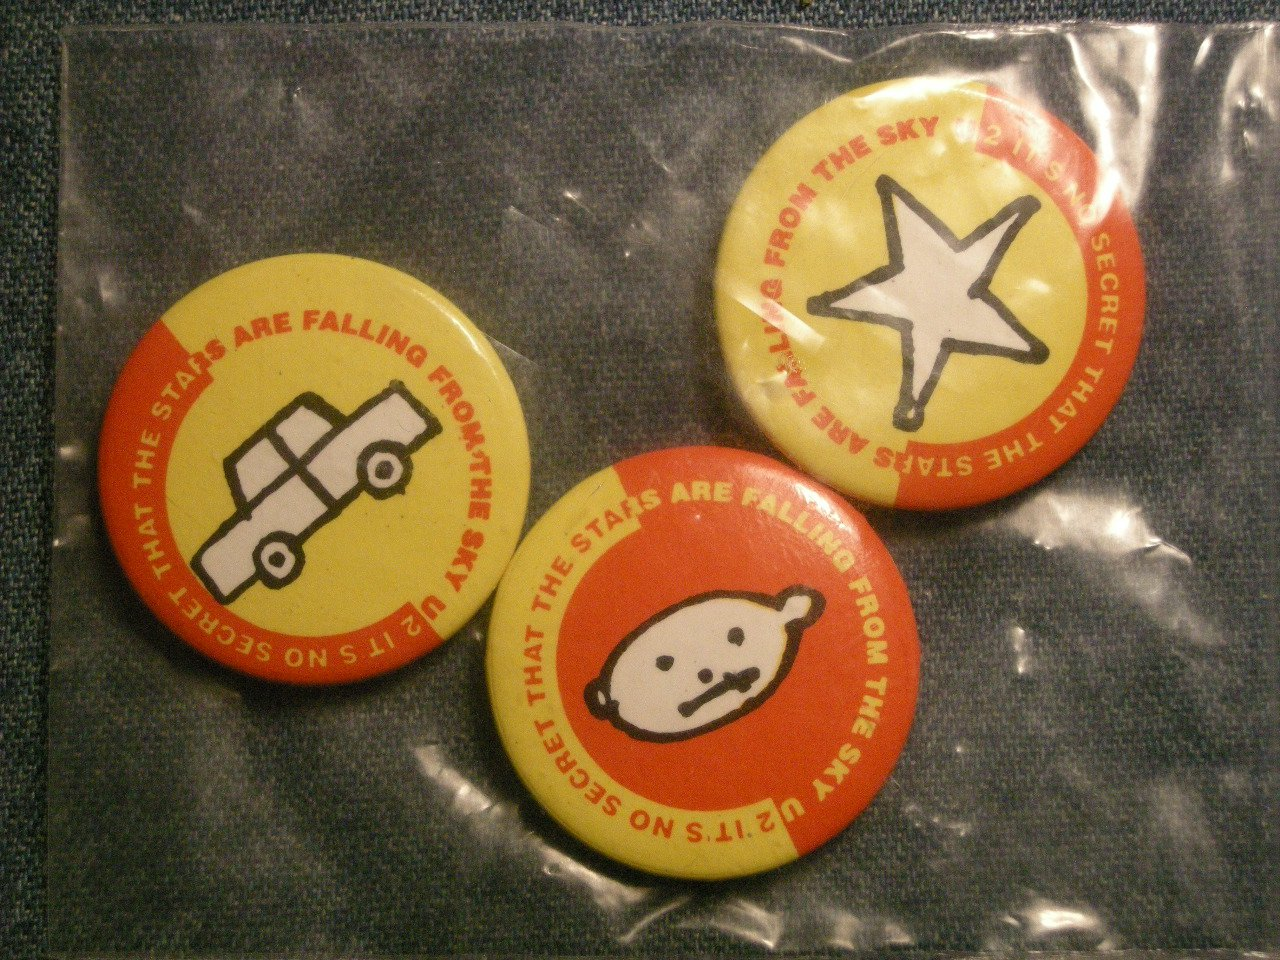 U2 PINBACK BUTTON the stars are falling from the sky bono SET OF 3